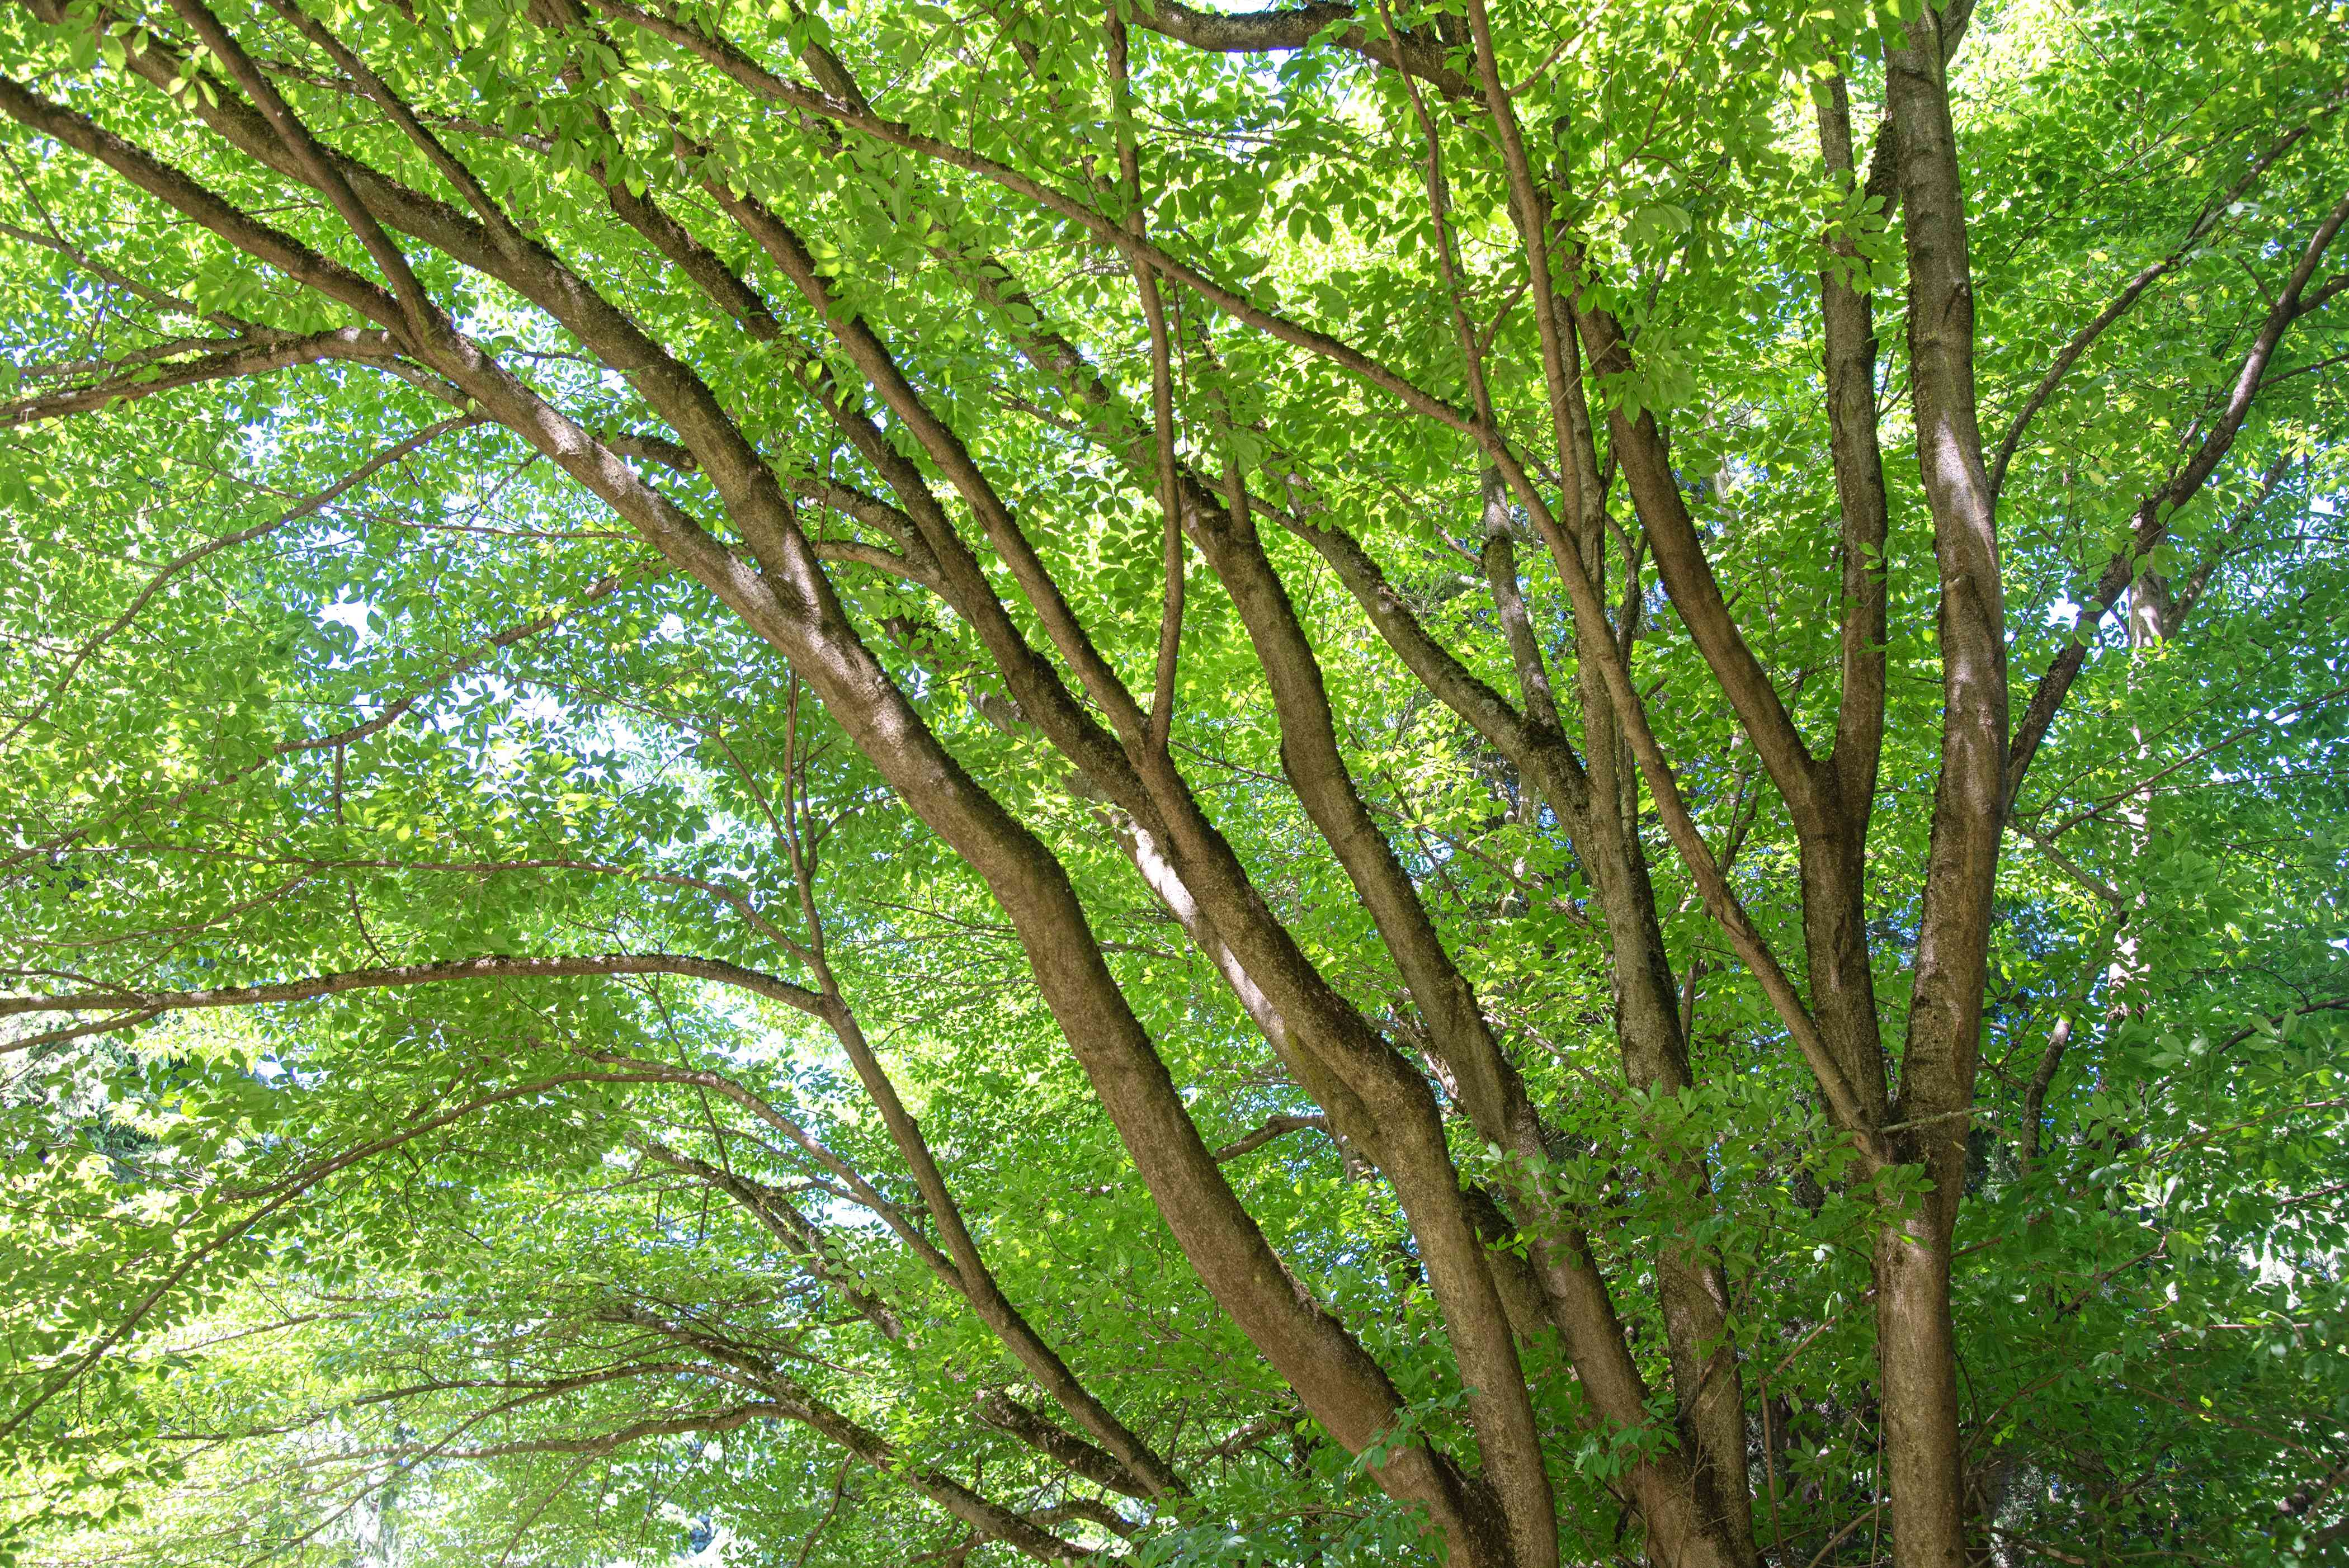 Vine leaf maple tree trunks sprawling into spreading branches with bright green leaves